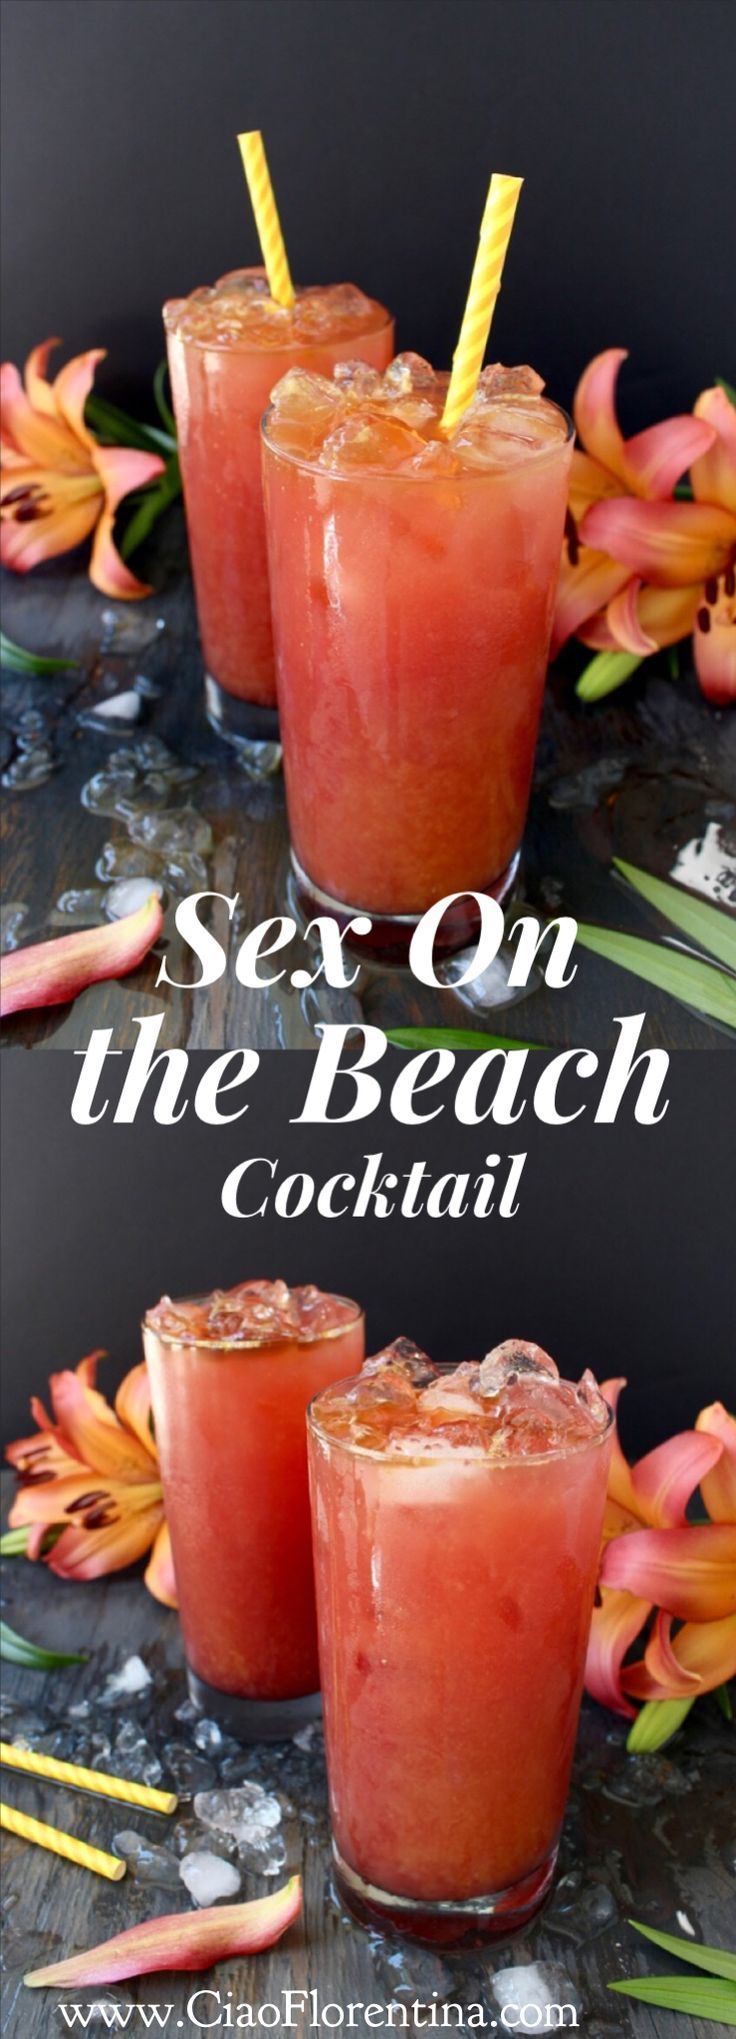 Sex On The Beach Drink Recipe • CiaoFlorentina